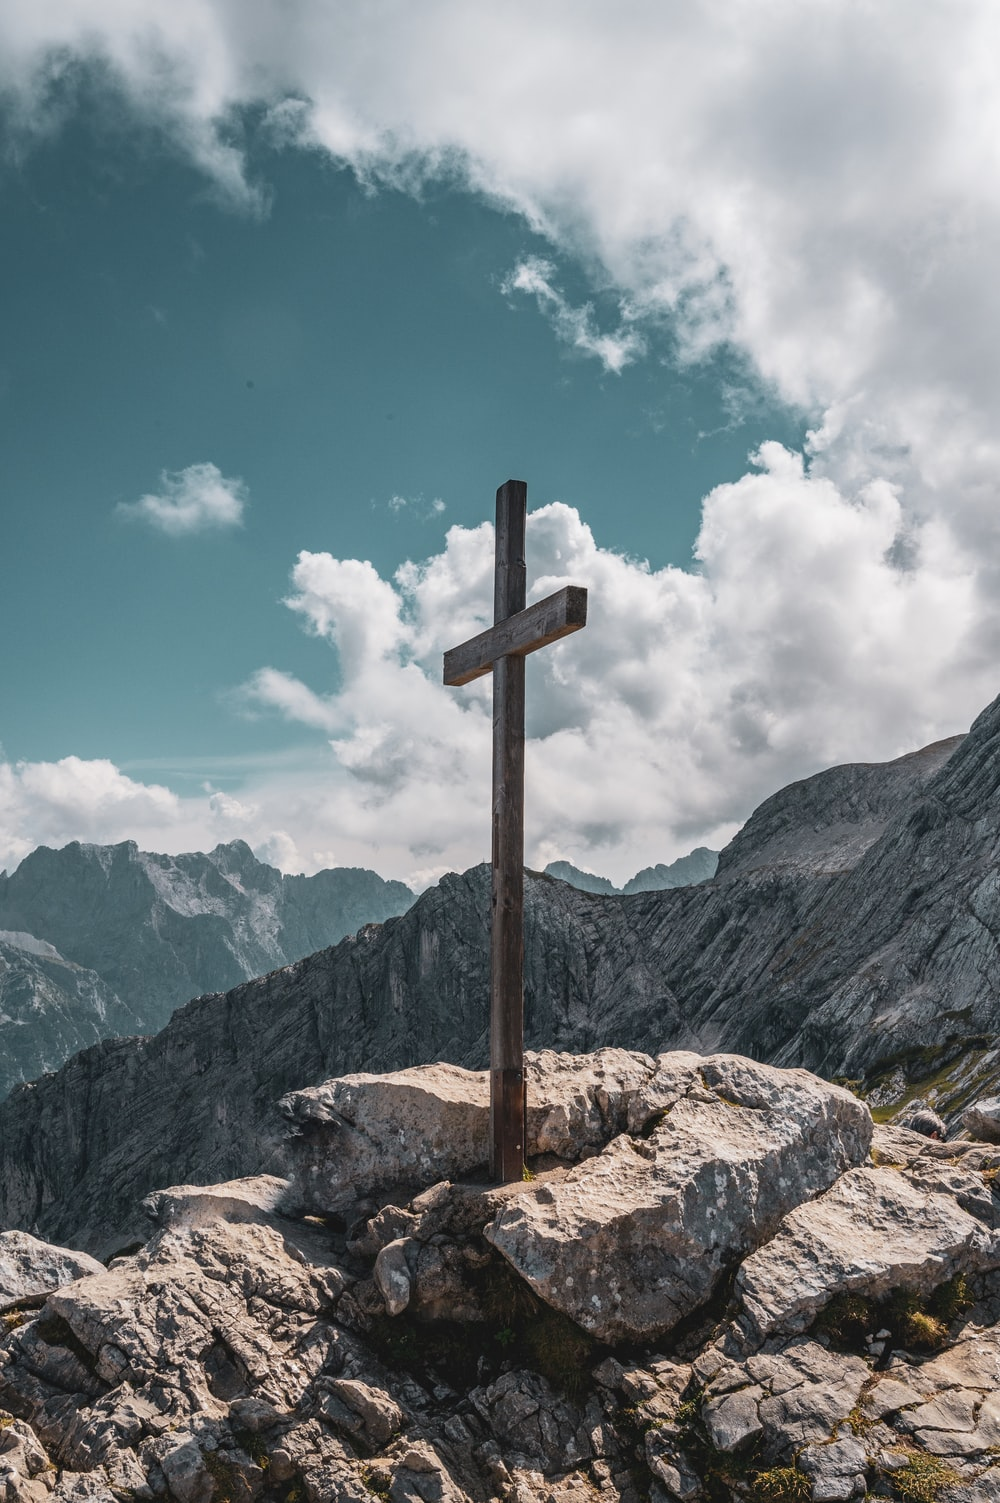 brown wooden cross on brown rock near green mountains under blue sky and white clouds during